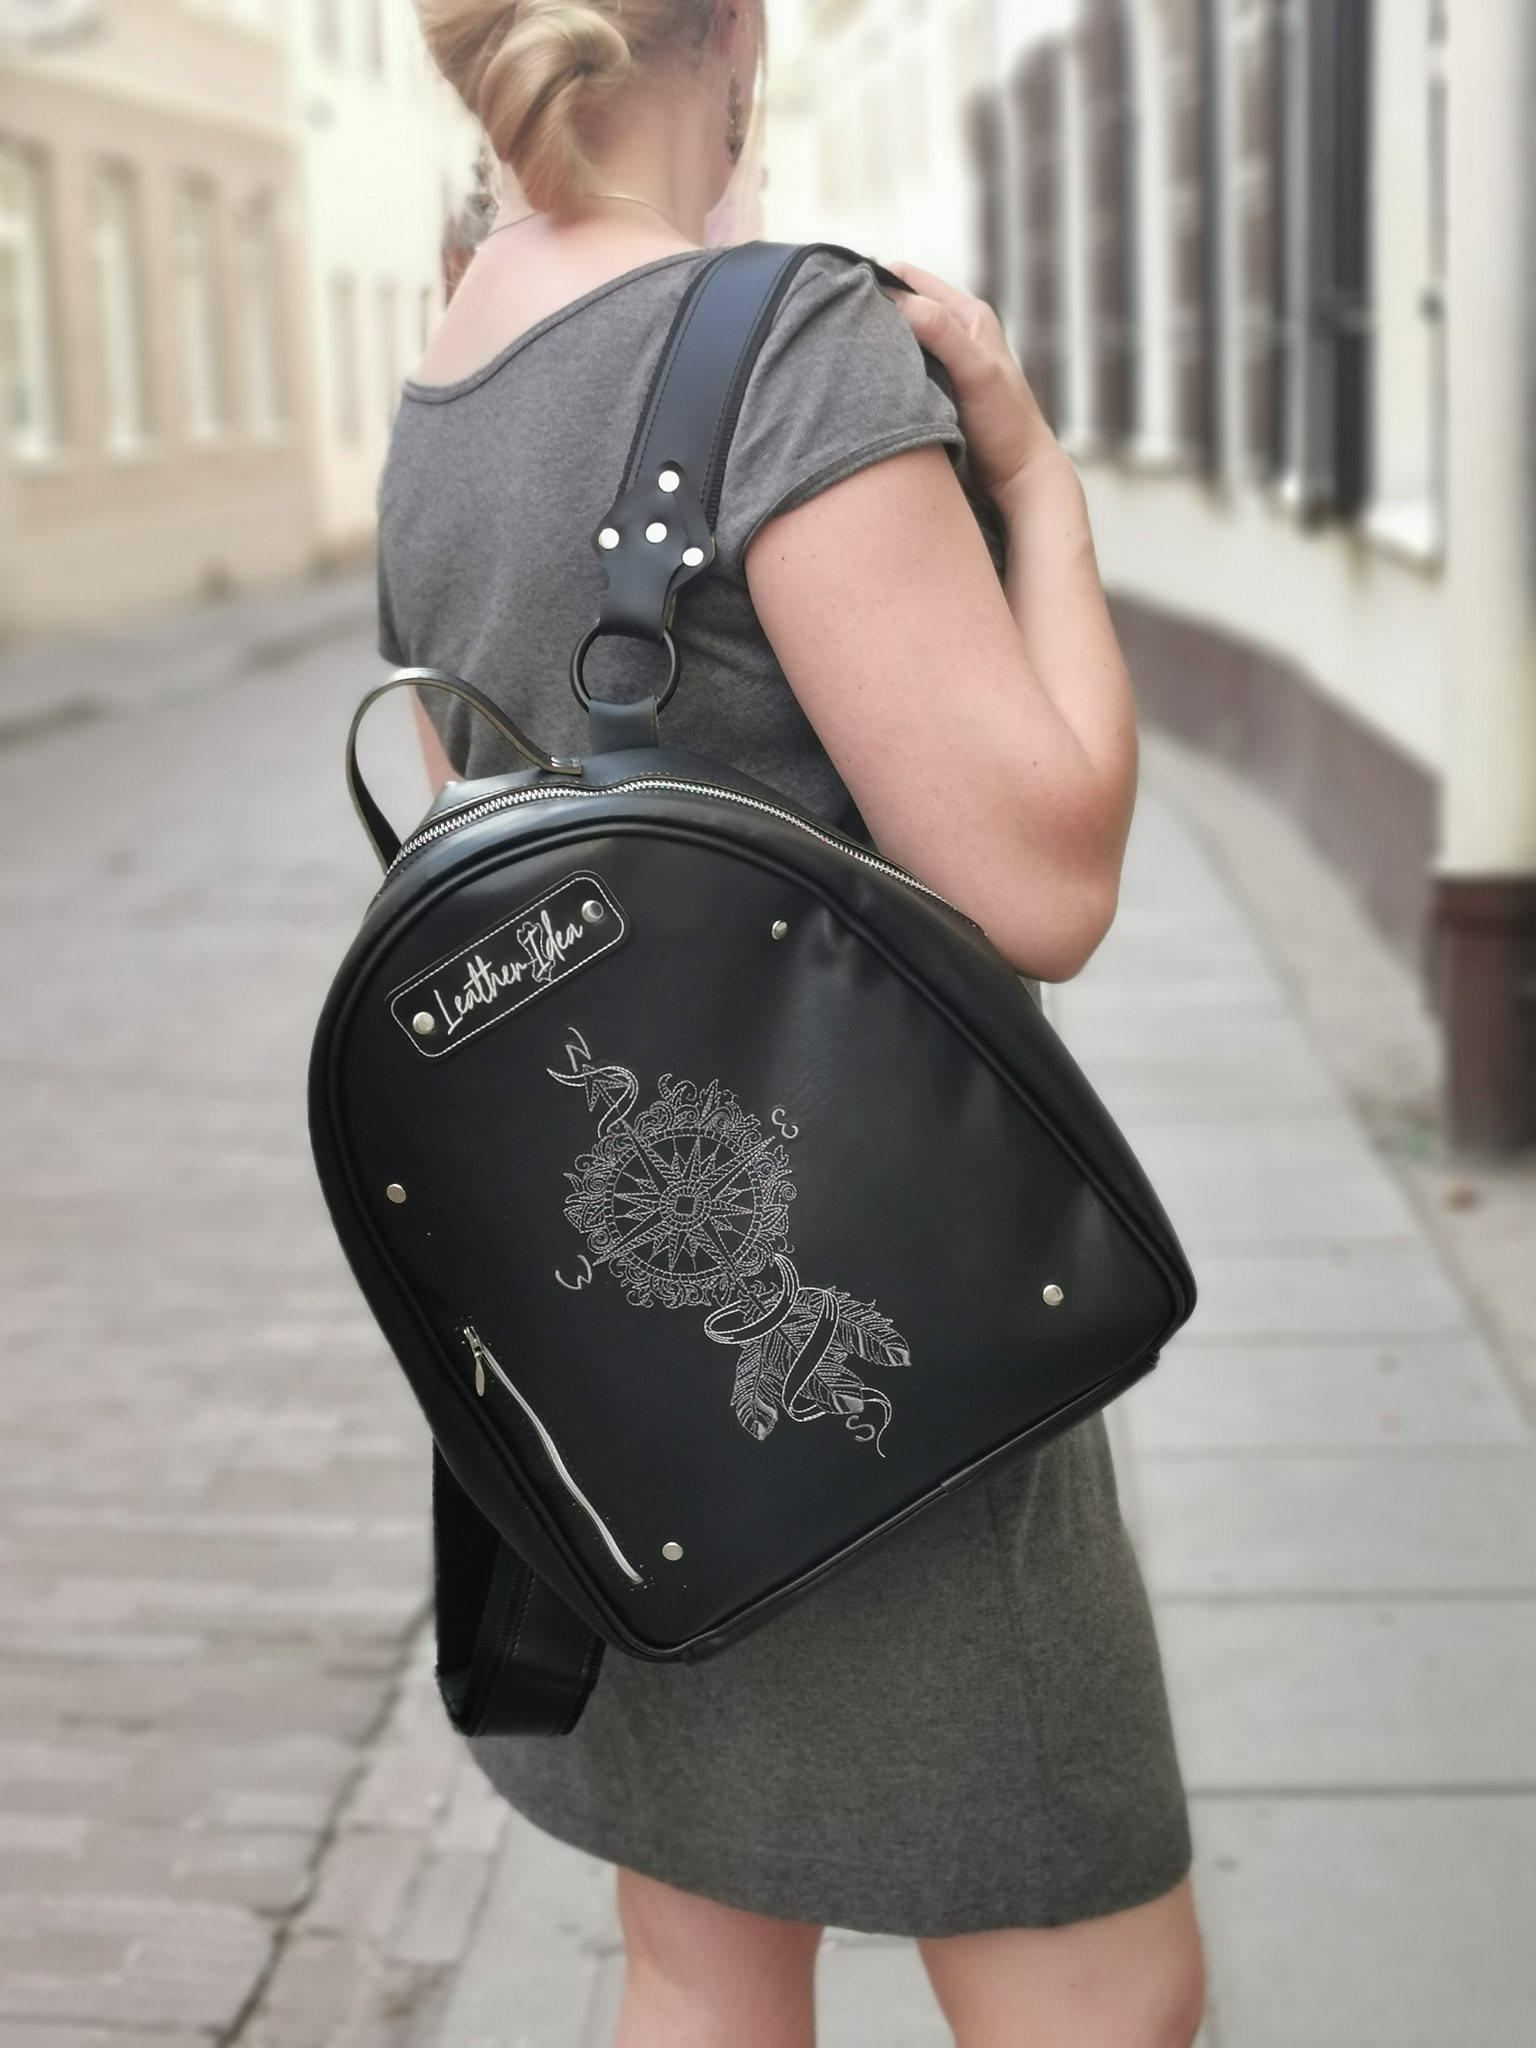 Embroidered bag with Compass dreamcatcher design